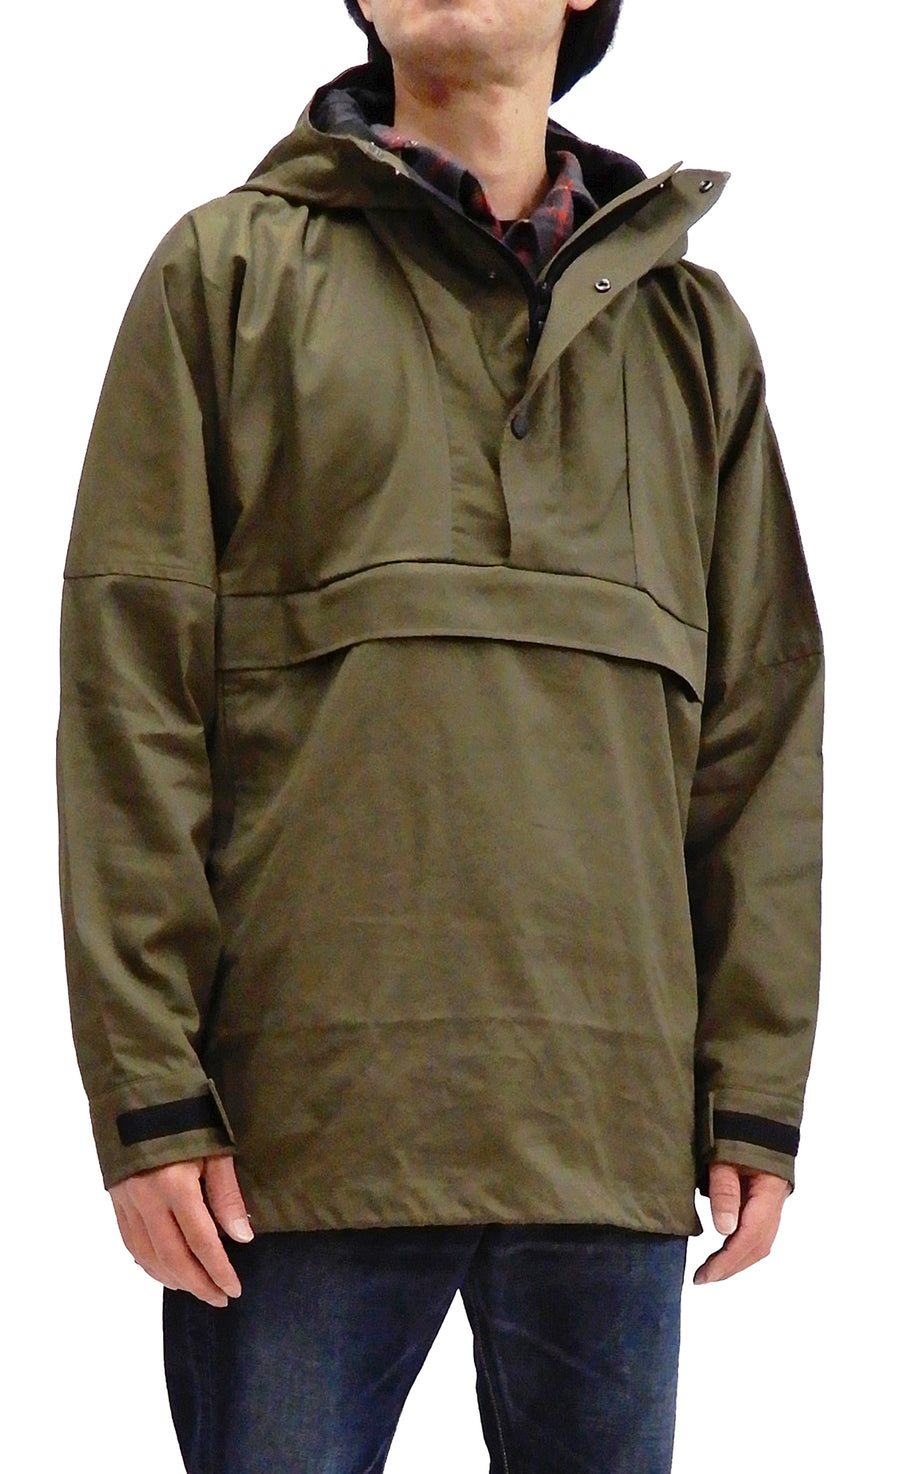 ZANTER JAPAN Men's Anorak Parka Lightweight Ventile Unlined Pullover Hooded Jacket 6903 Khaki